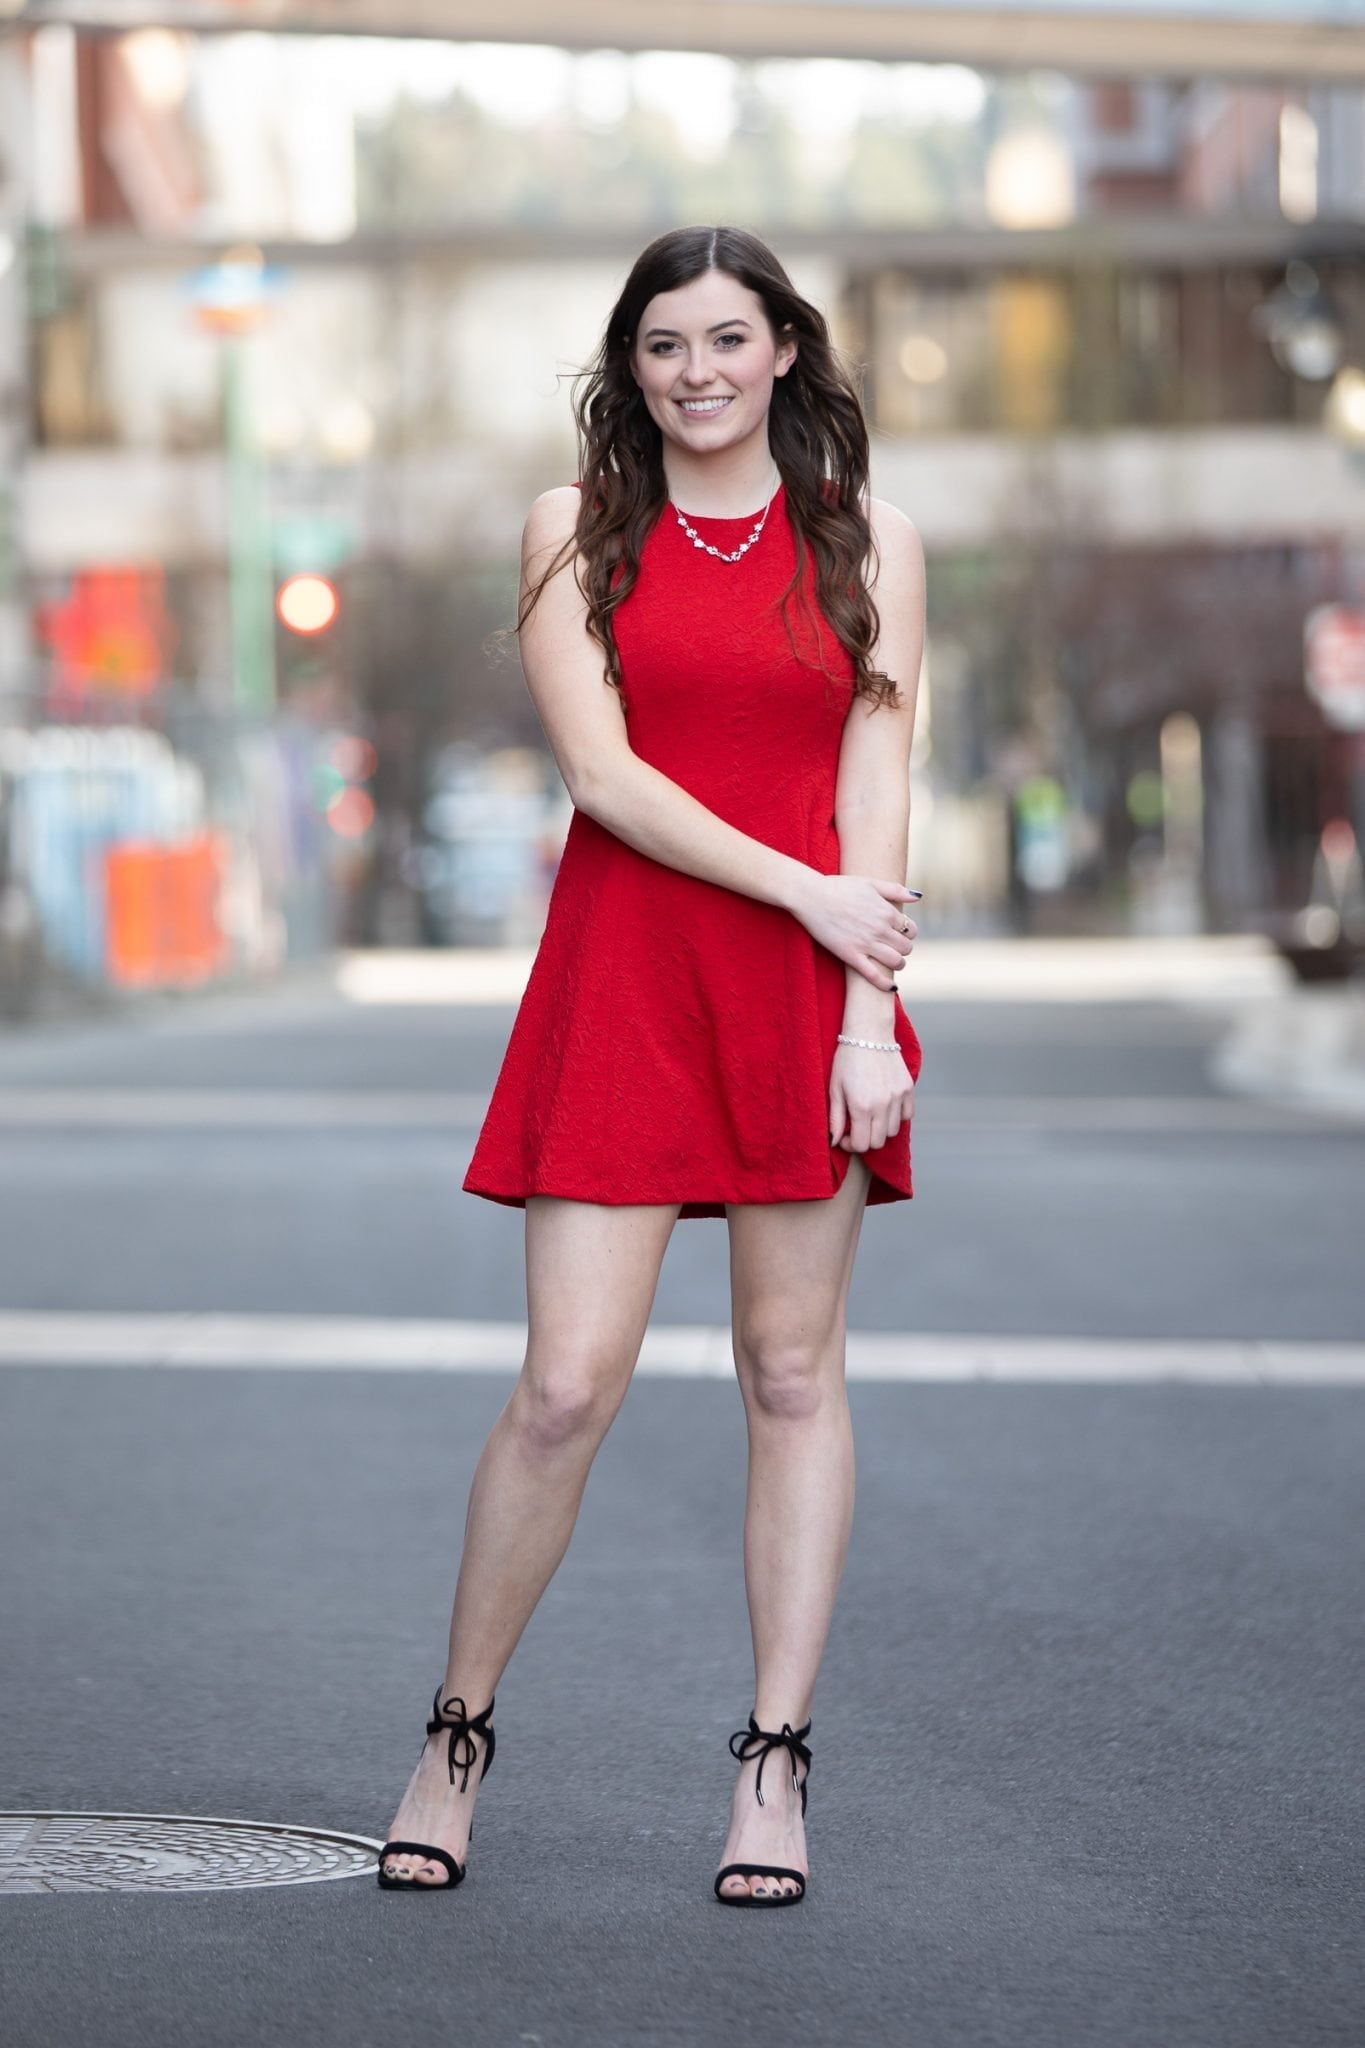 senior photo of girl in red dress in street during photo shoot